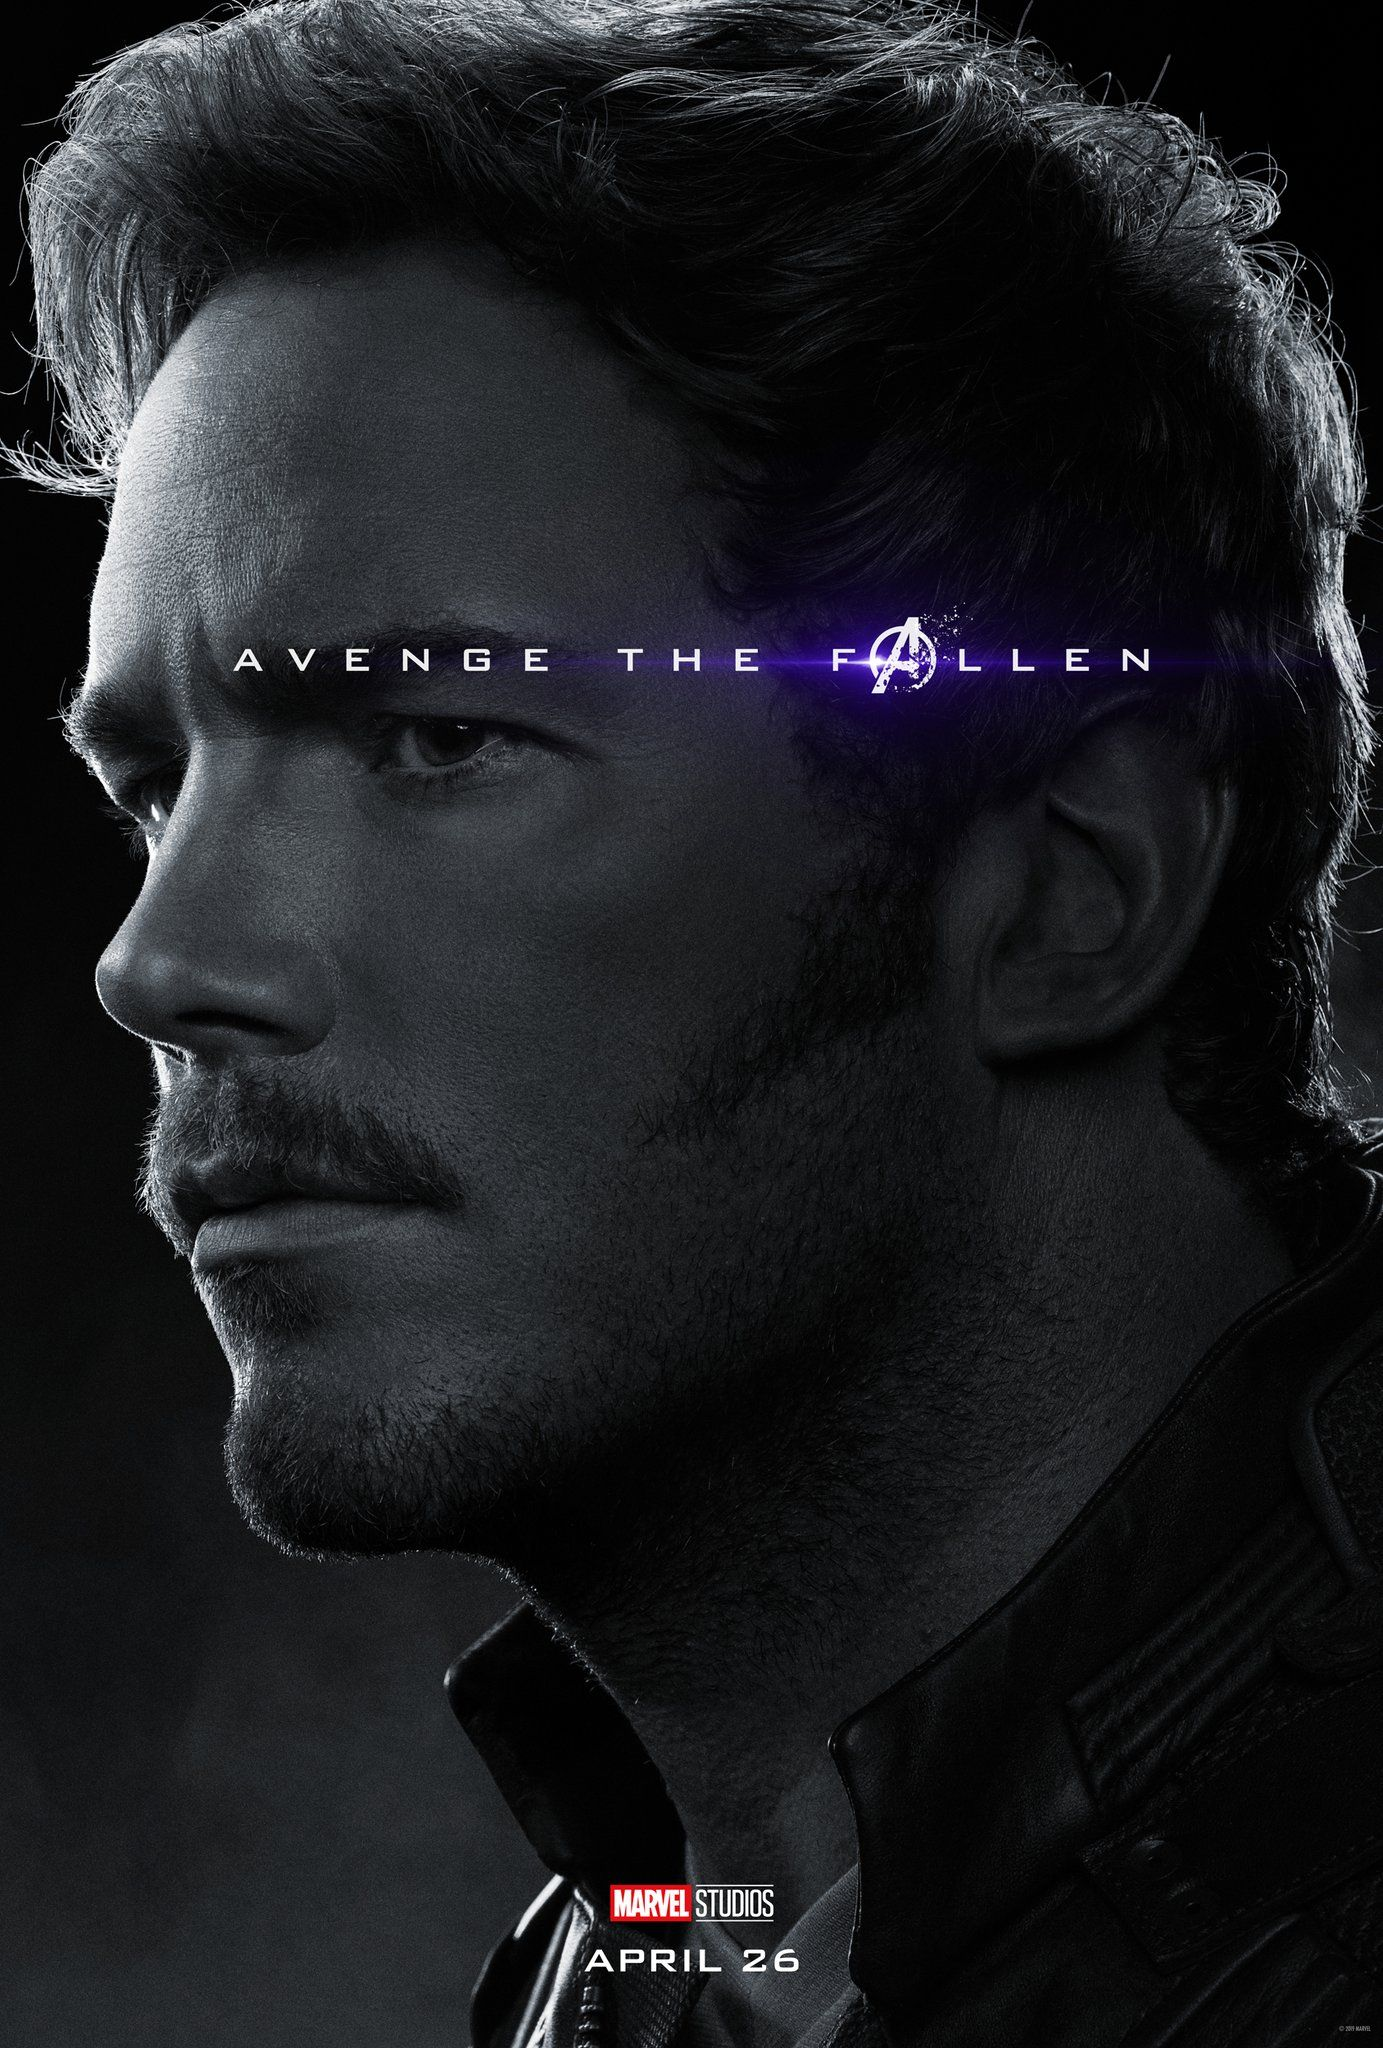 Avengers Endgame Character Posters Confirm The Living And The Dead